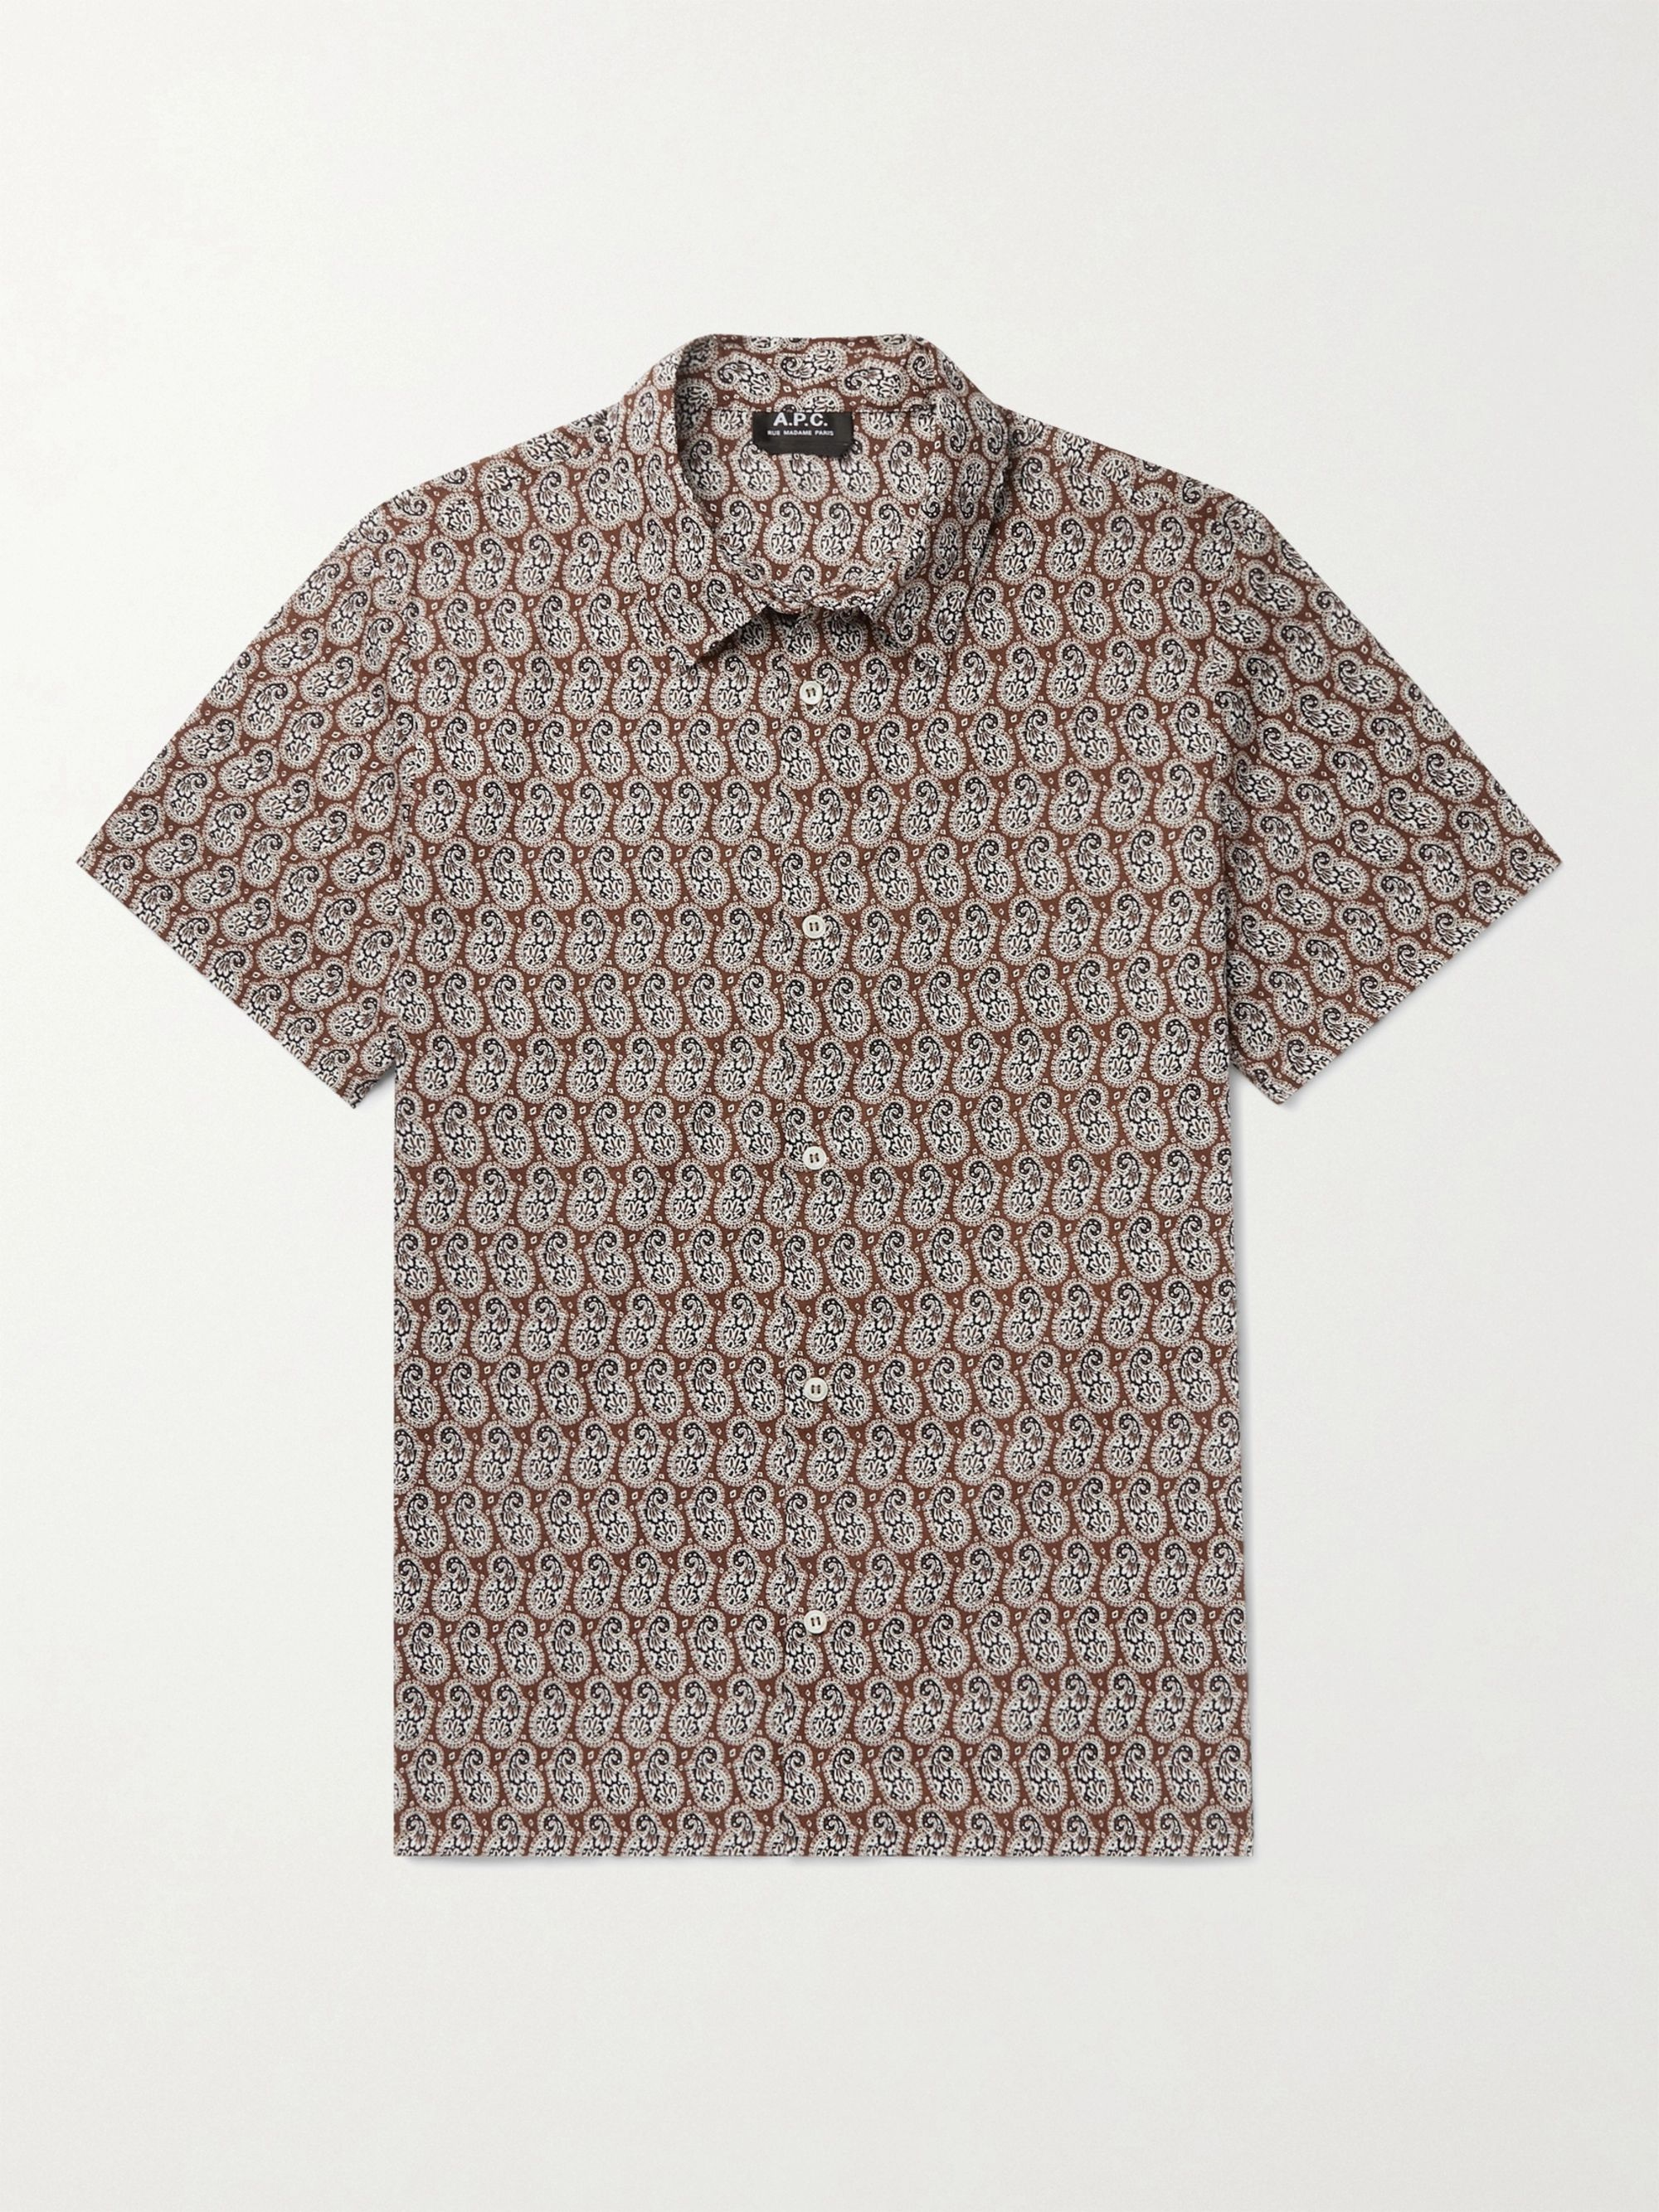 A.P.C. Leandre Printed Cotton Shirt